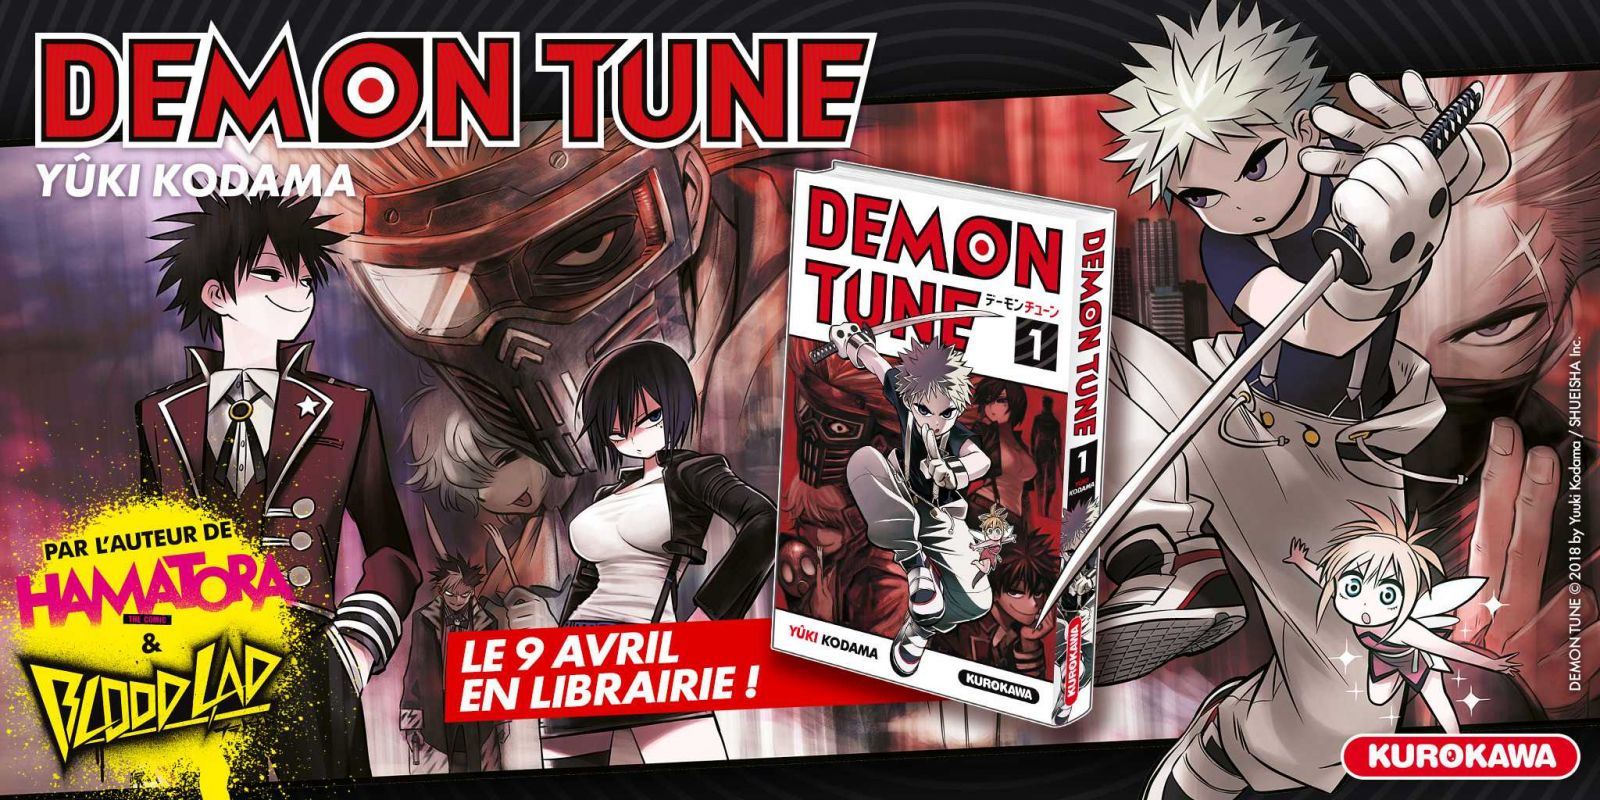 Demon Tune chez Kurokawa